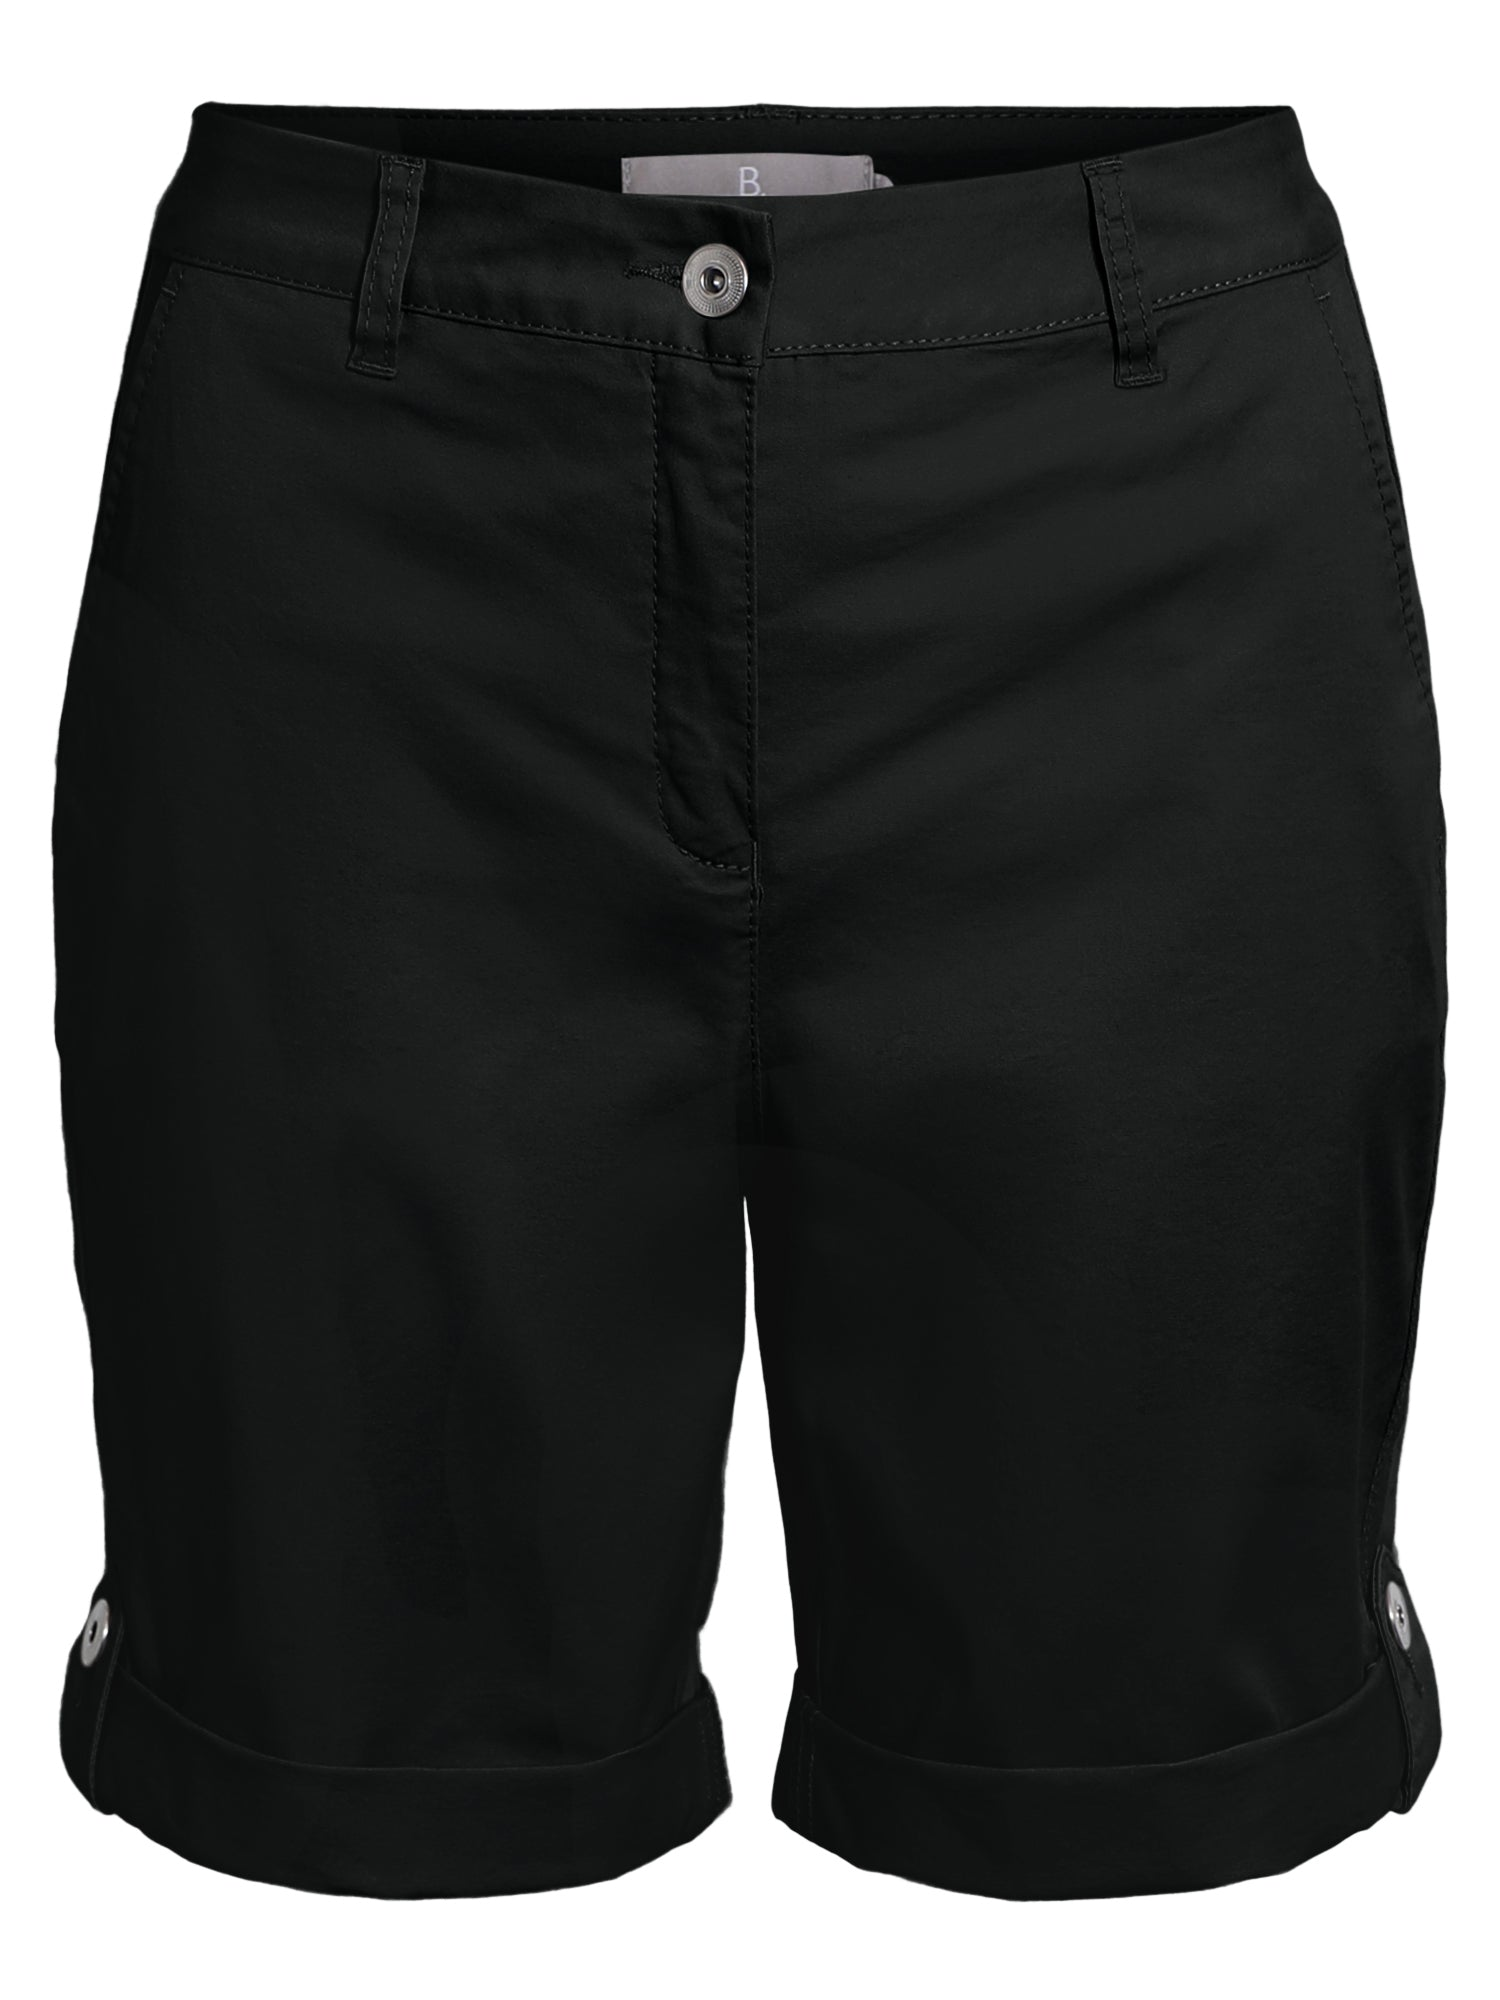 Image of   Casual shorts - Black